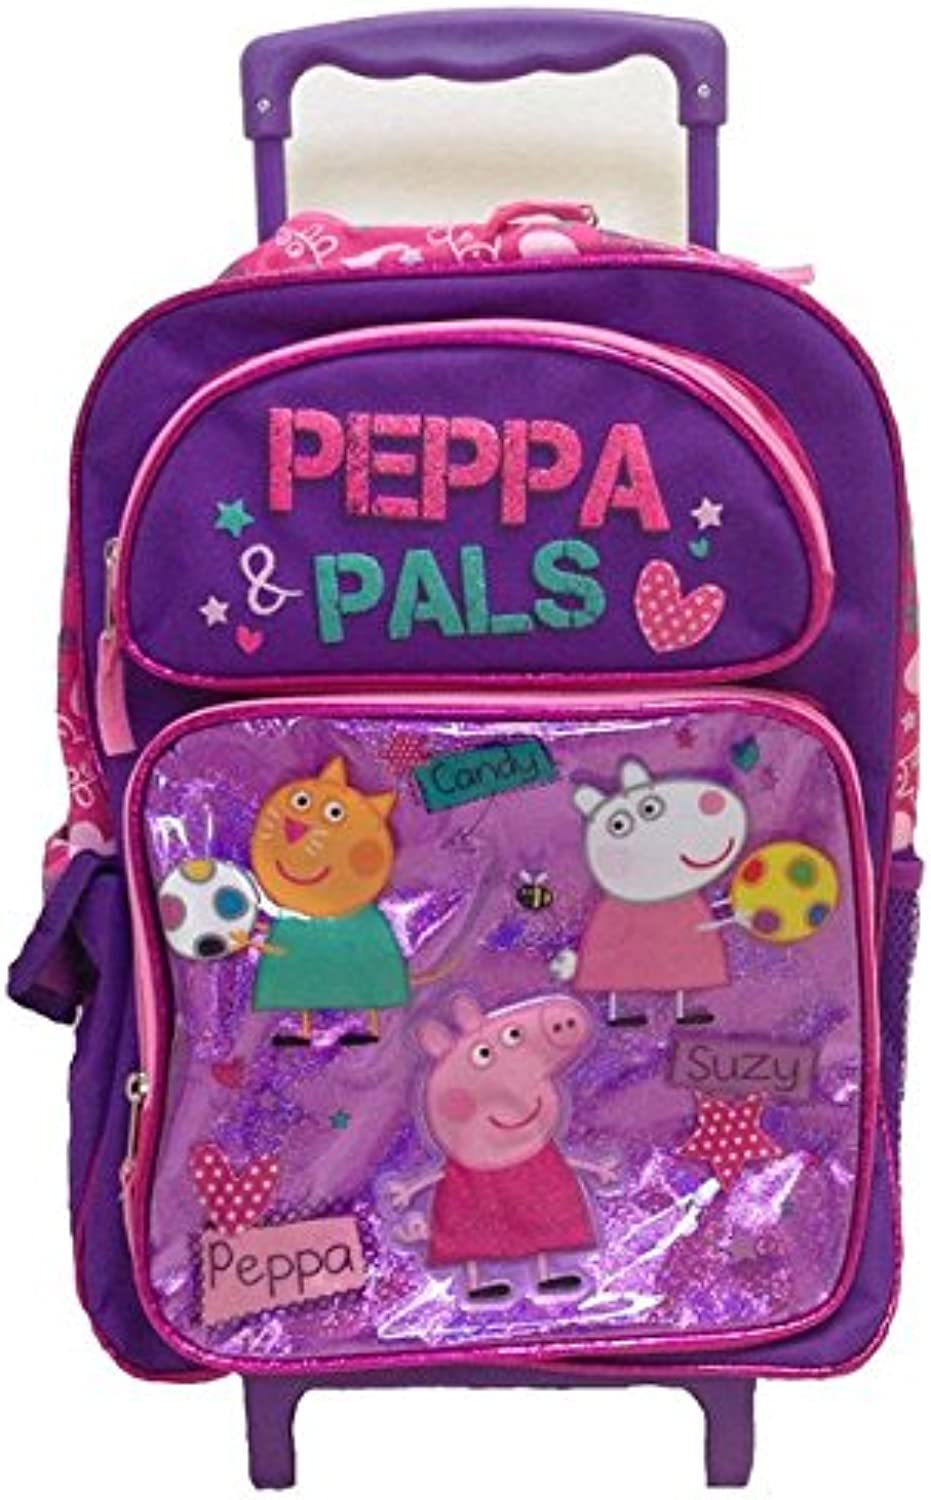 New Peppa Peppa Peppa Pig Candy-suzy Large Rolling Backpack B00ZVYY1GO | Exquisite Handwerkskunst  87c410